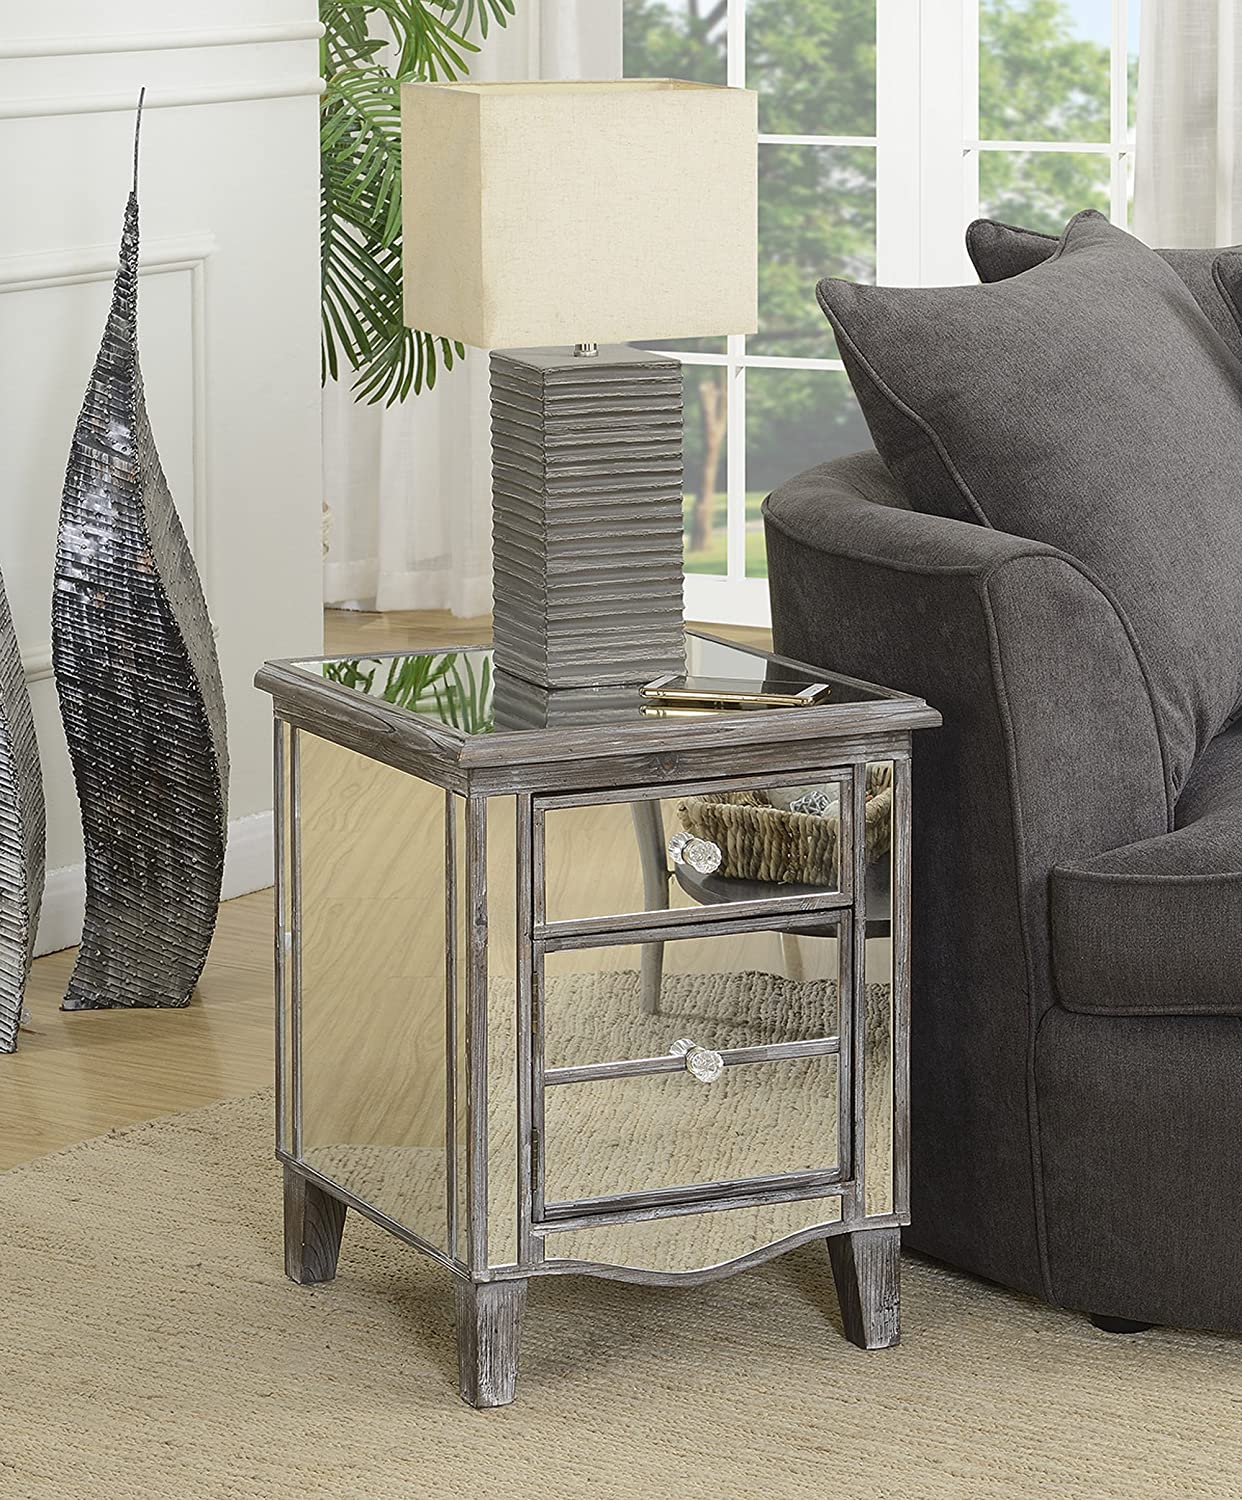 Convenience Concepts 413551WGY Gold Coast Mirrored End Table, Weathered Gray